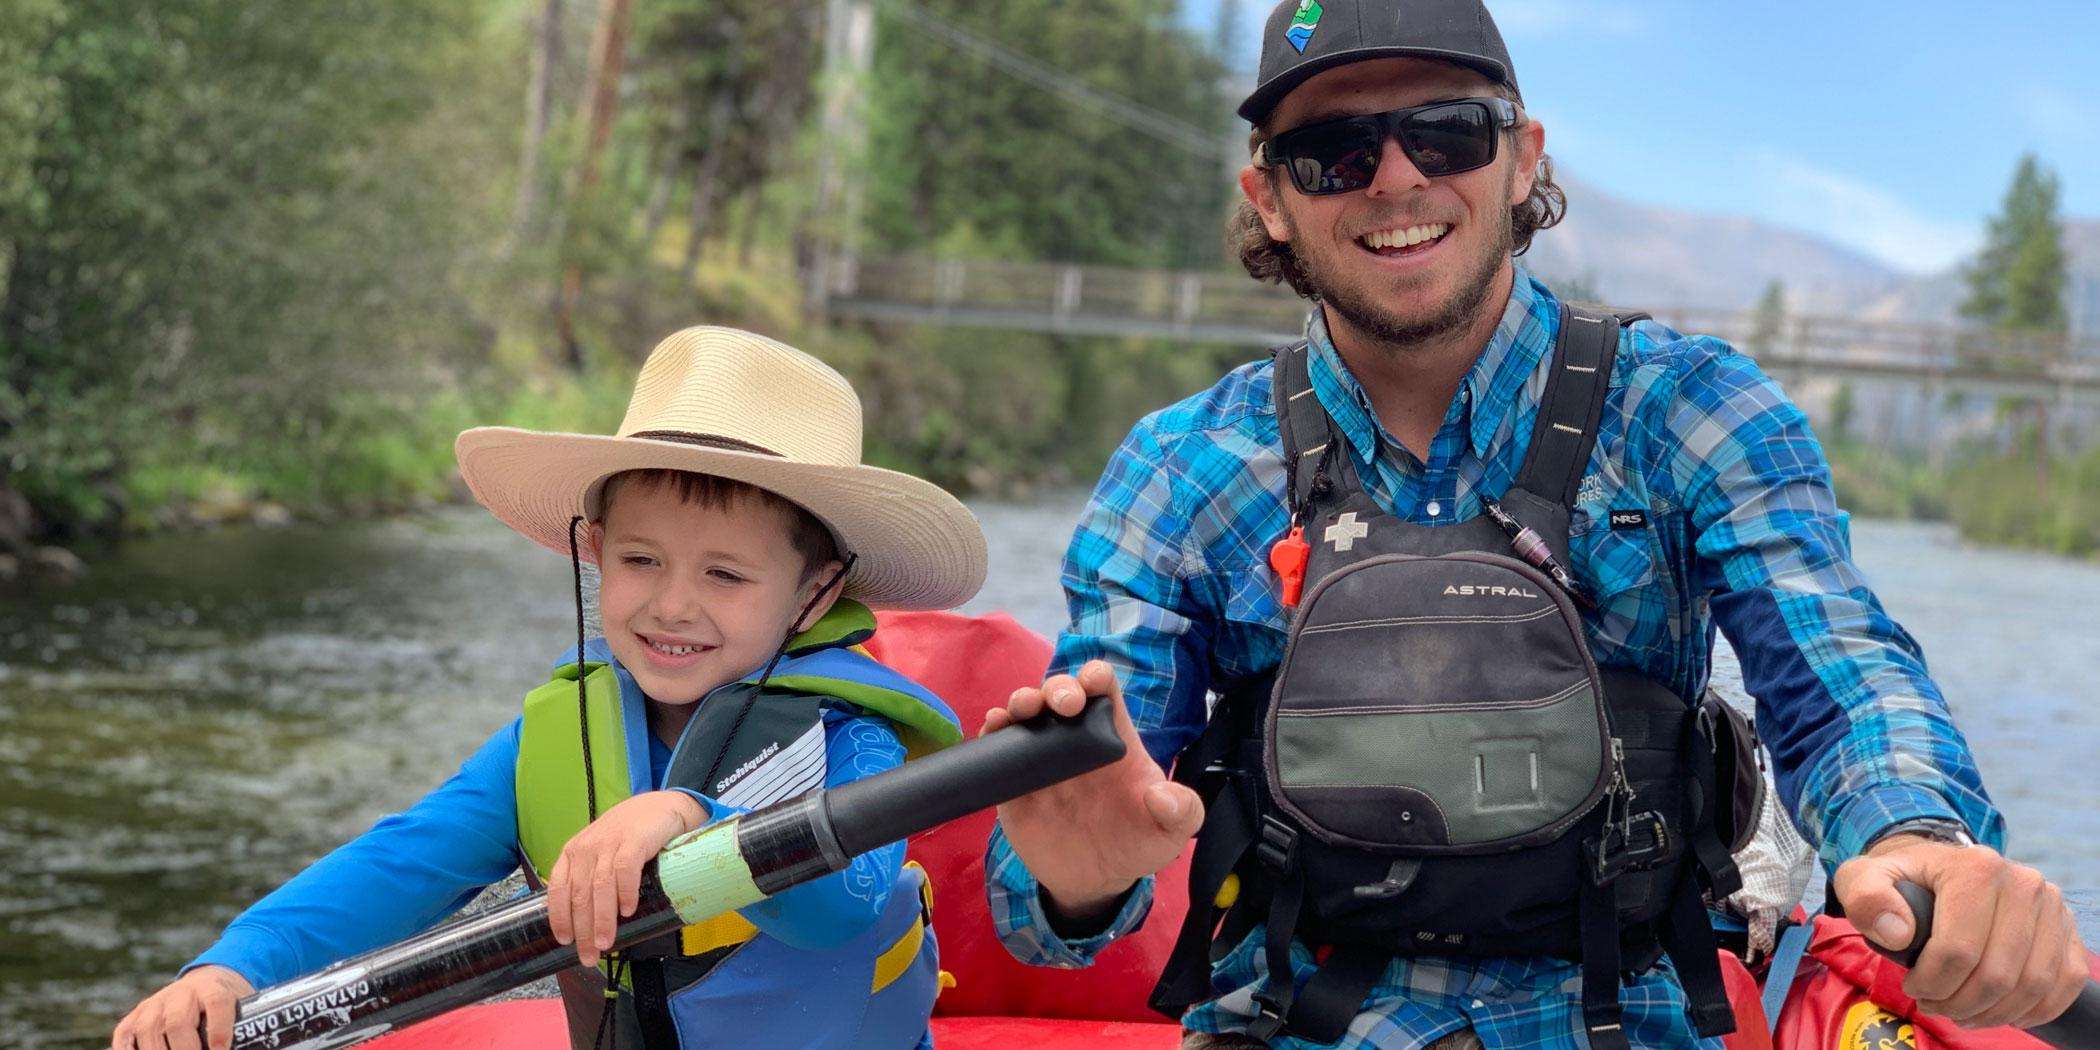 David Cline and his son, Charlie.